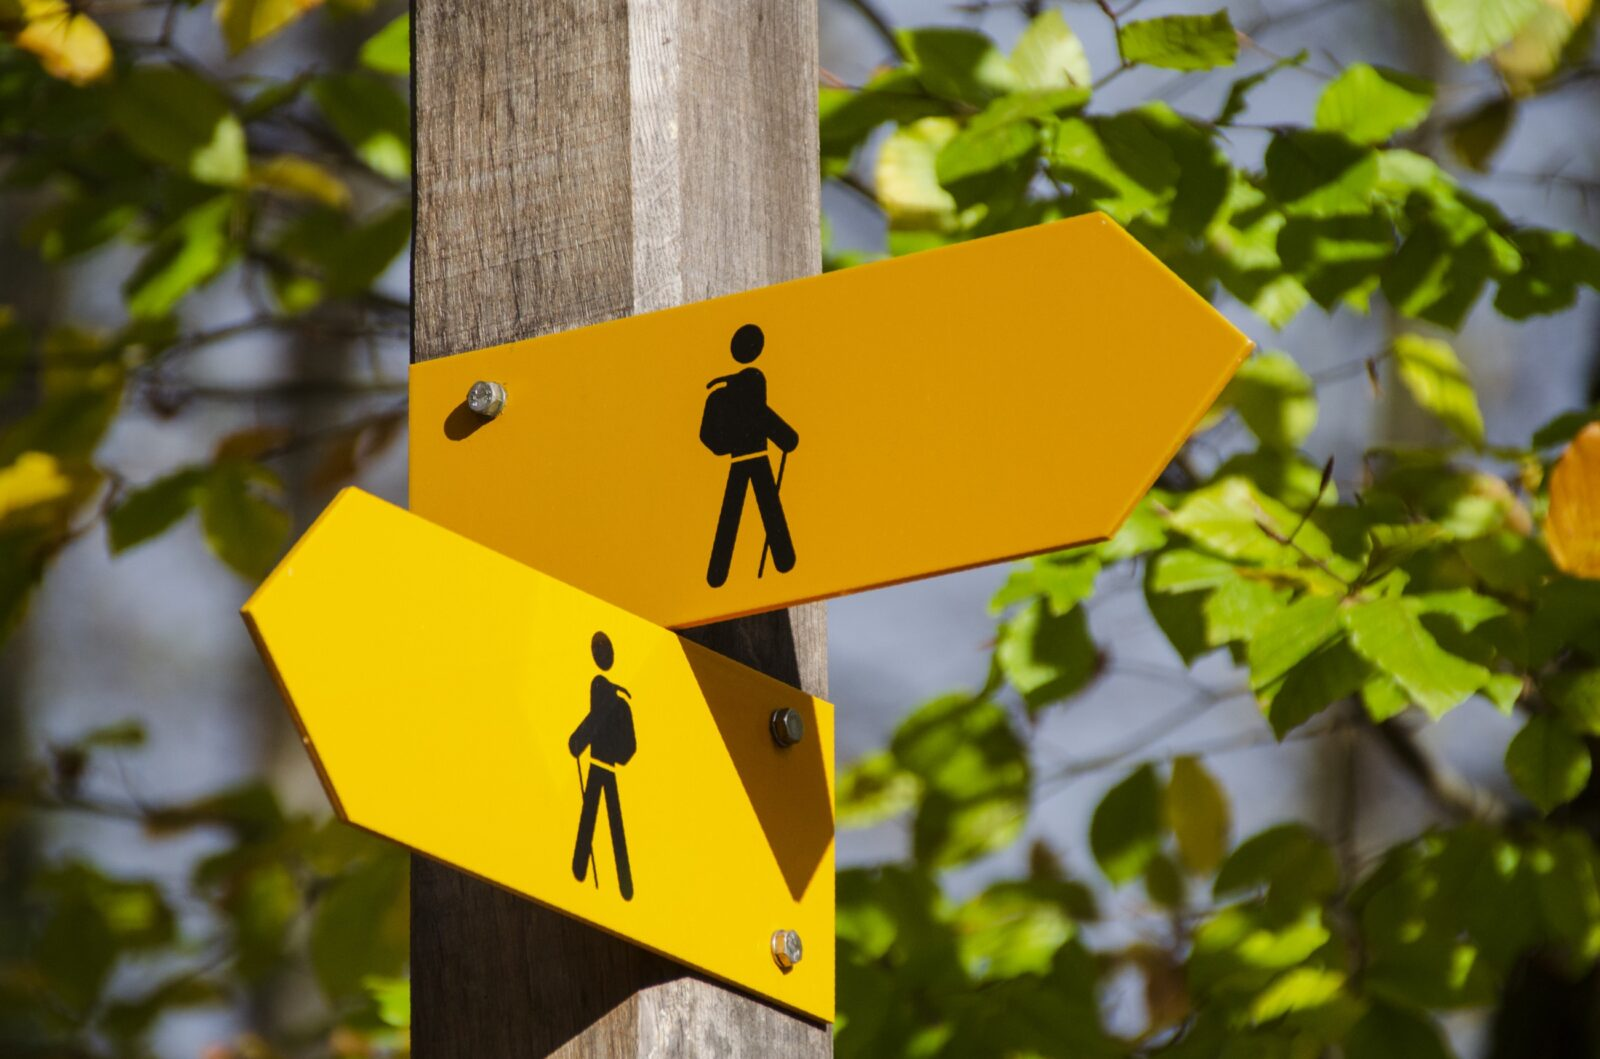 Yellow Signs on Wooden Pole. Signs look similiar but point in opposite directions seemingly providing contrary device.